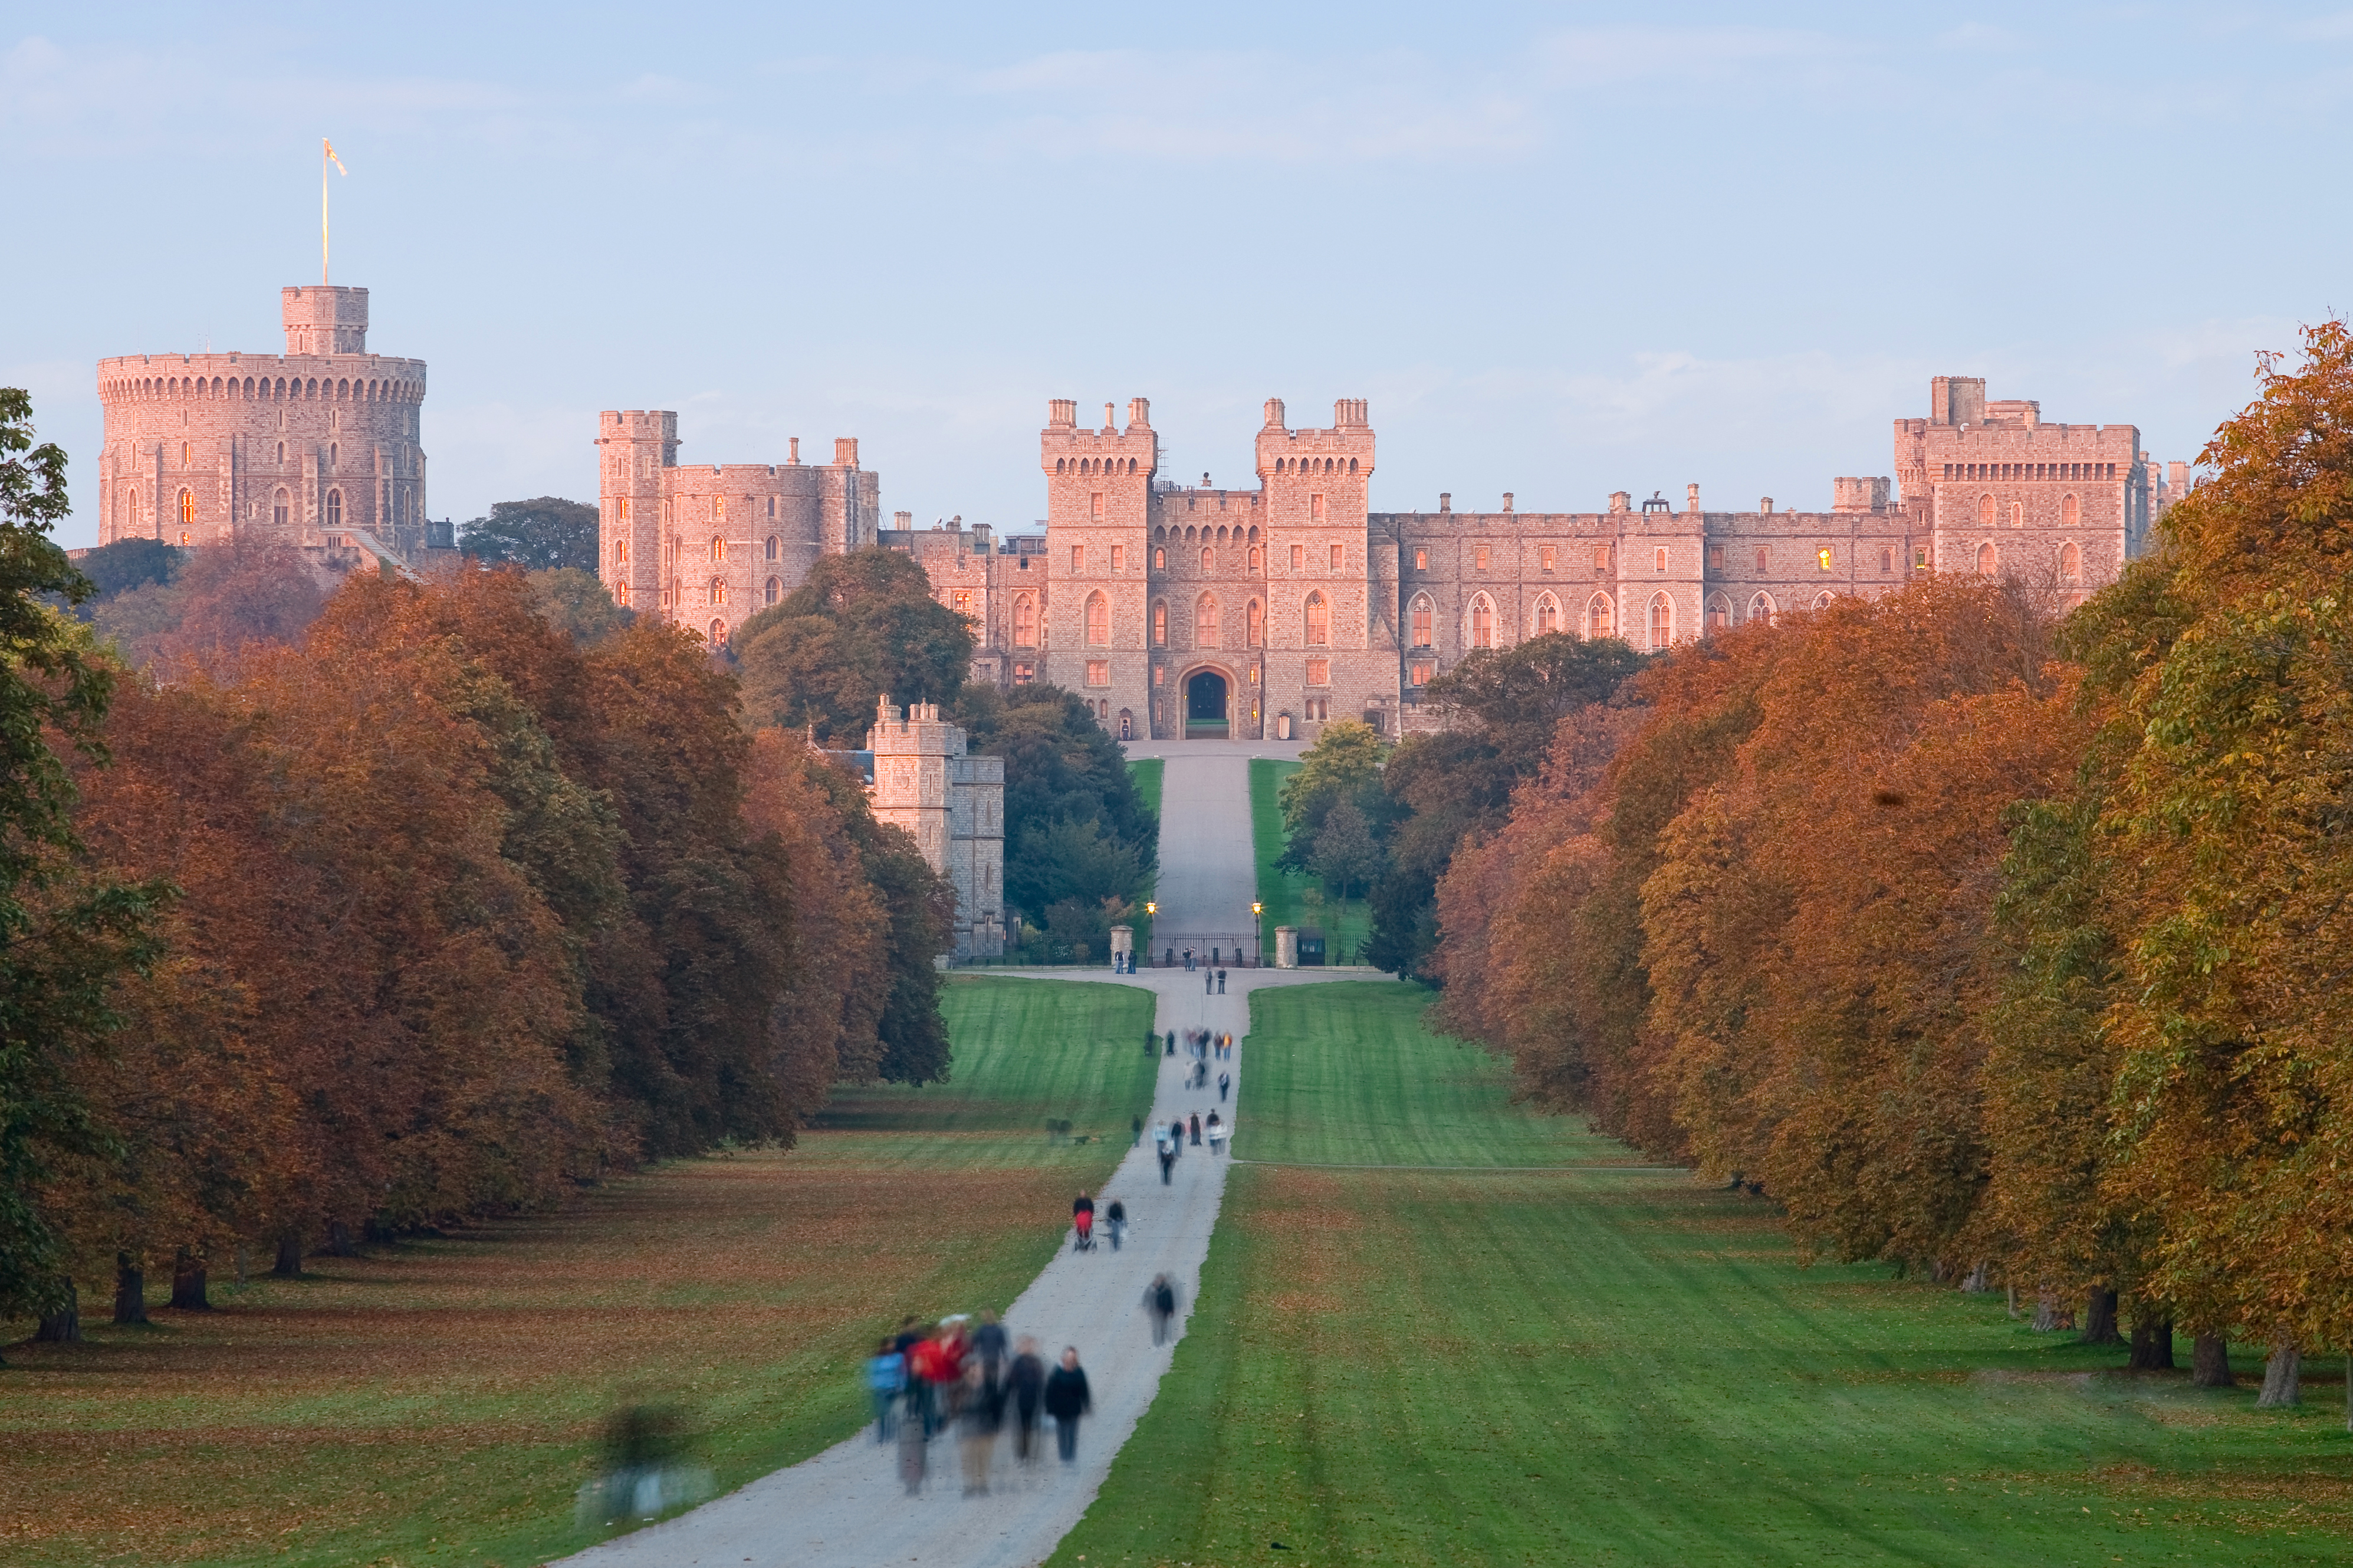 located-about-an-hour-west-of-london-windsor-castle-is-secret-world